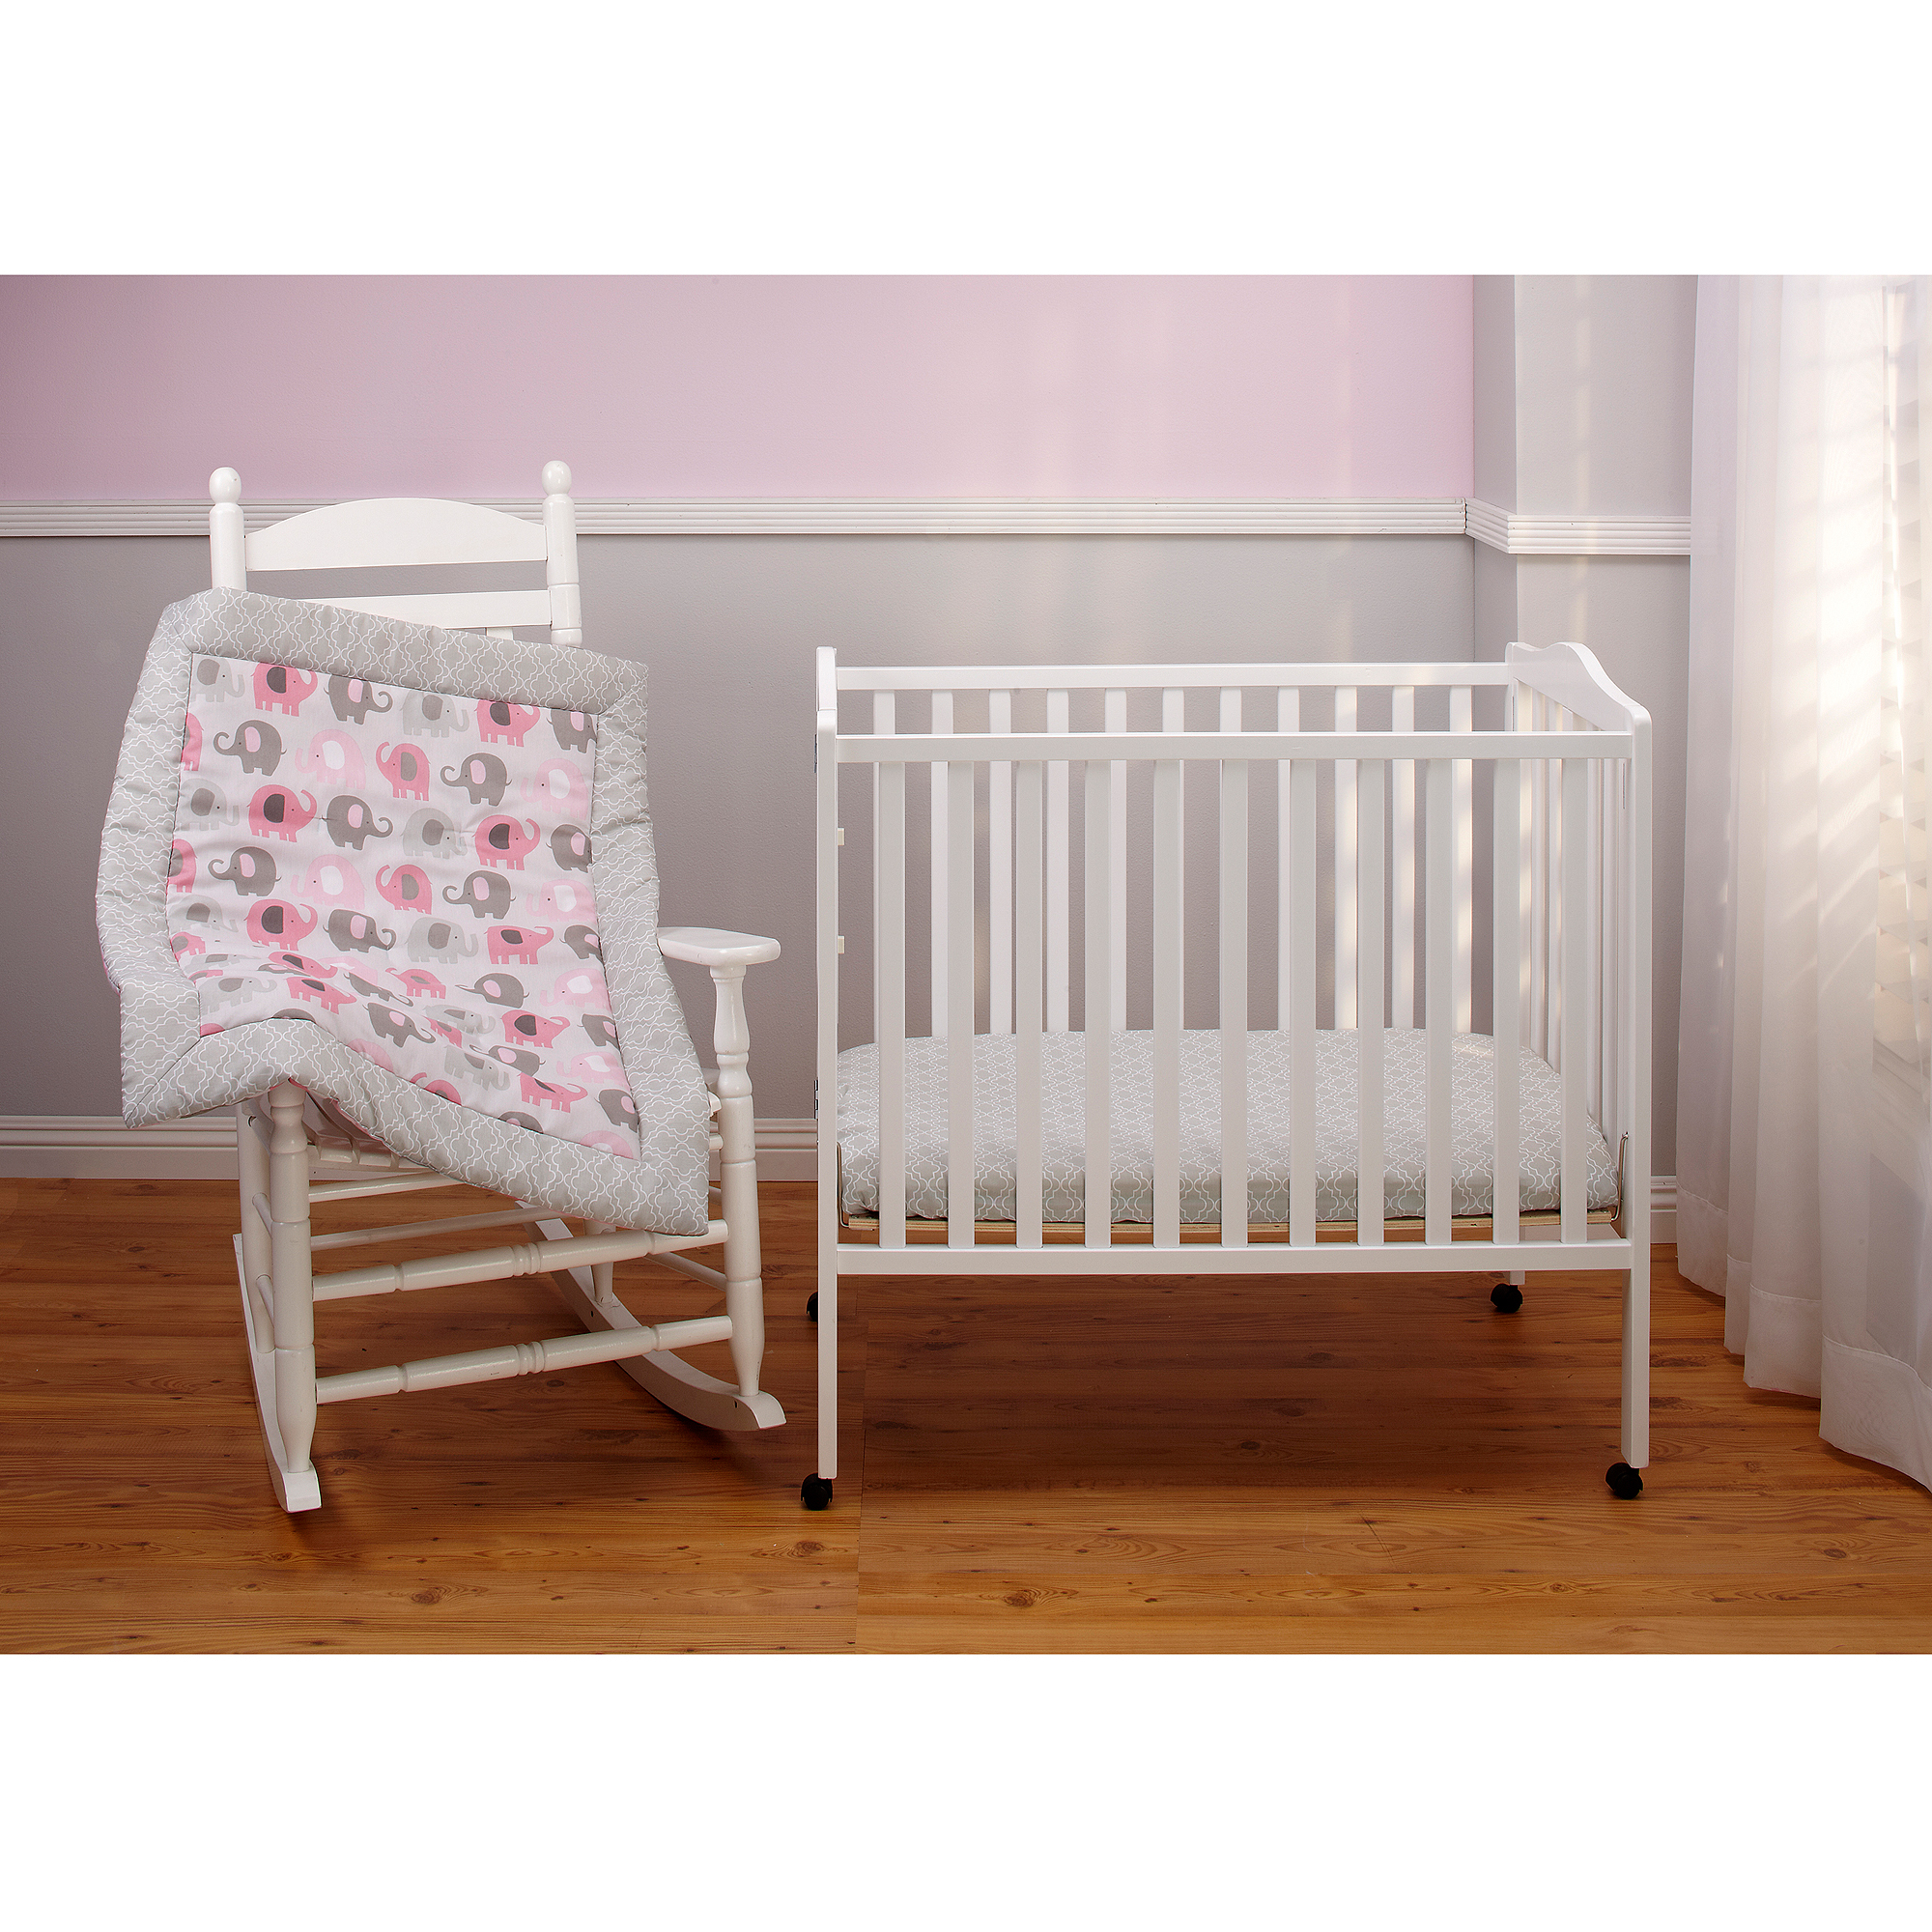 Little Bedding by NoJo Elephant Time 3-Piece Portable Crib Bedding Set, Pink